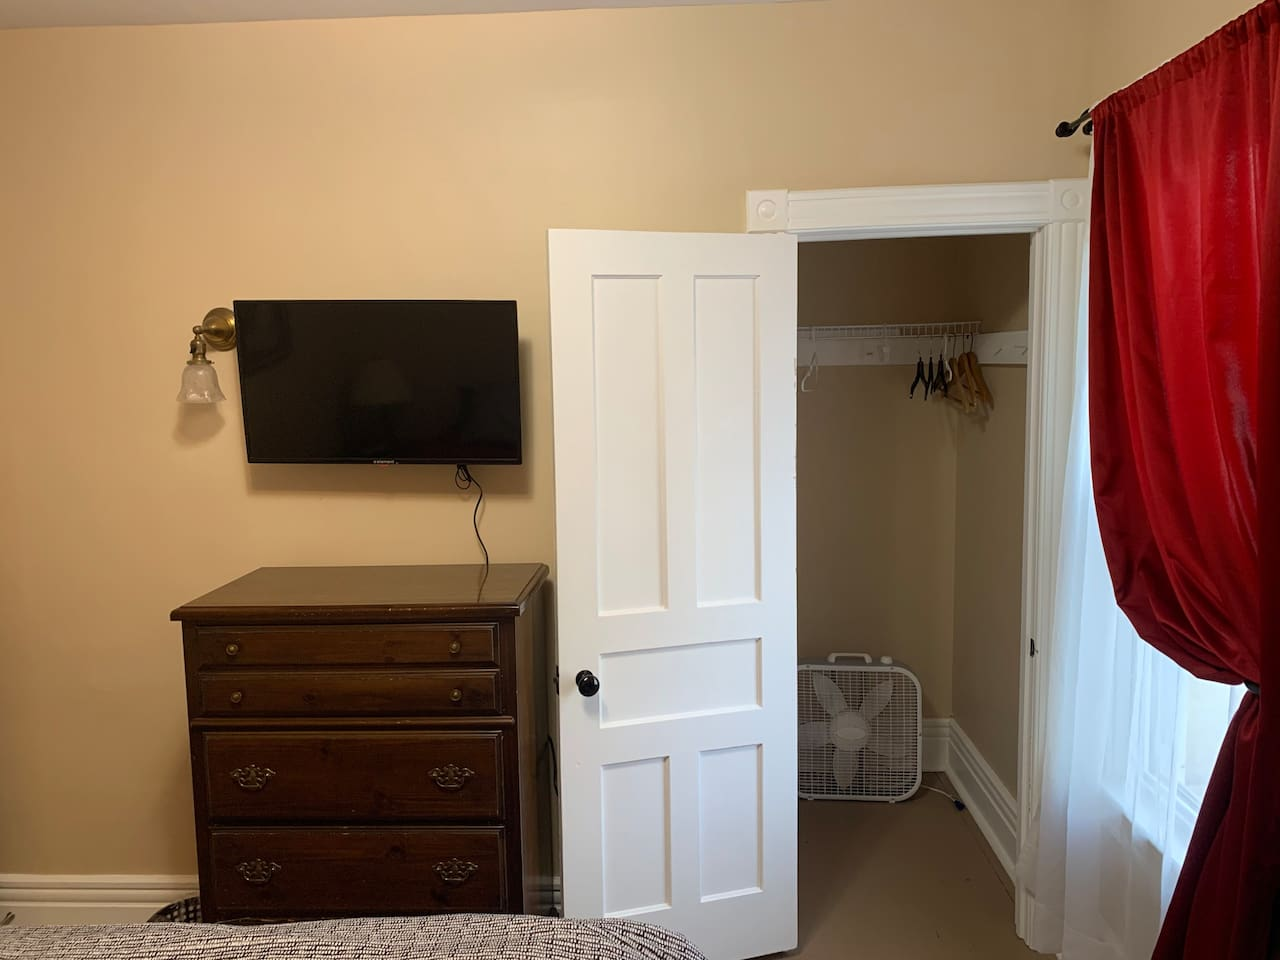 Other view of red room with TV and Closet.